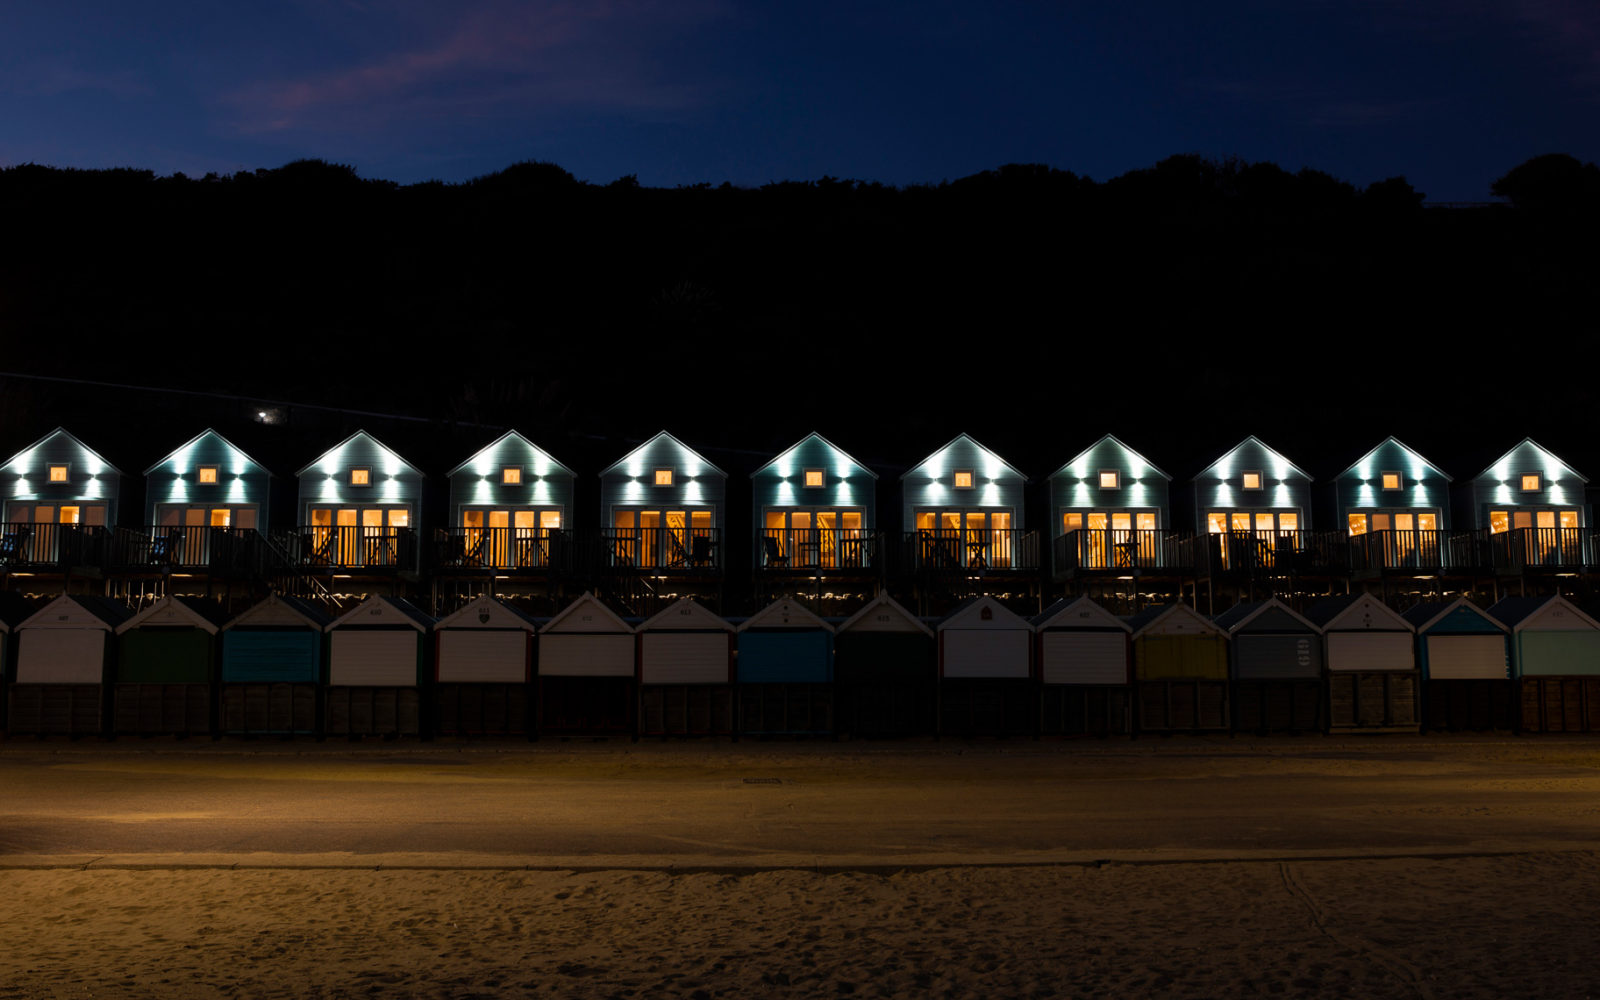 Wide shot of the bournemouth beach huts all lit up at night